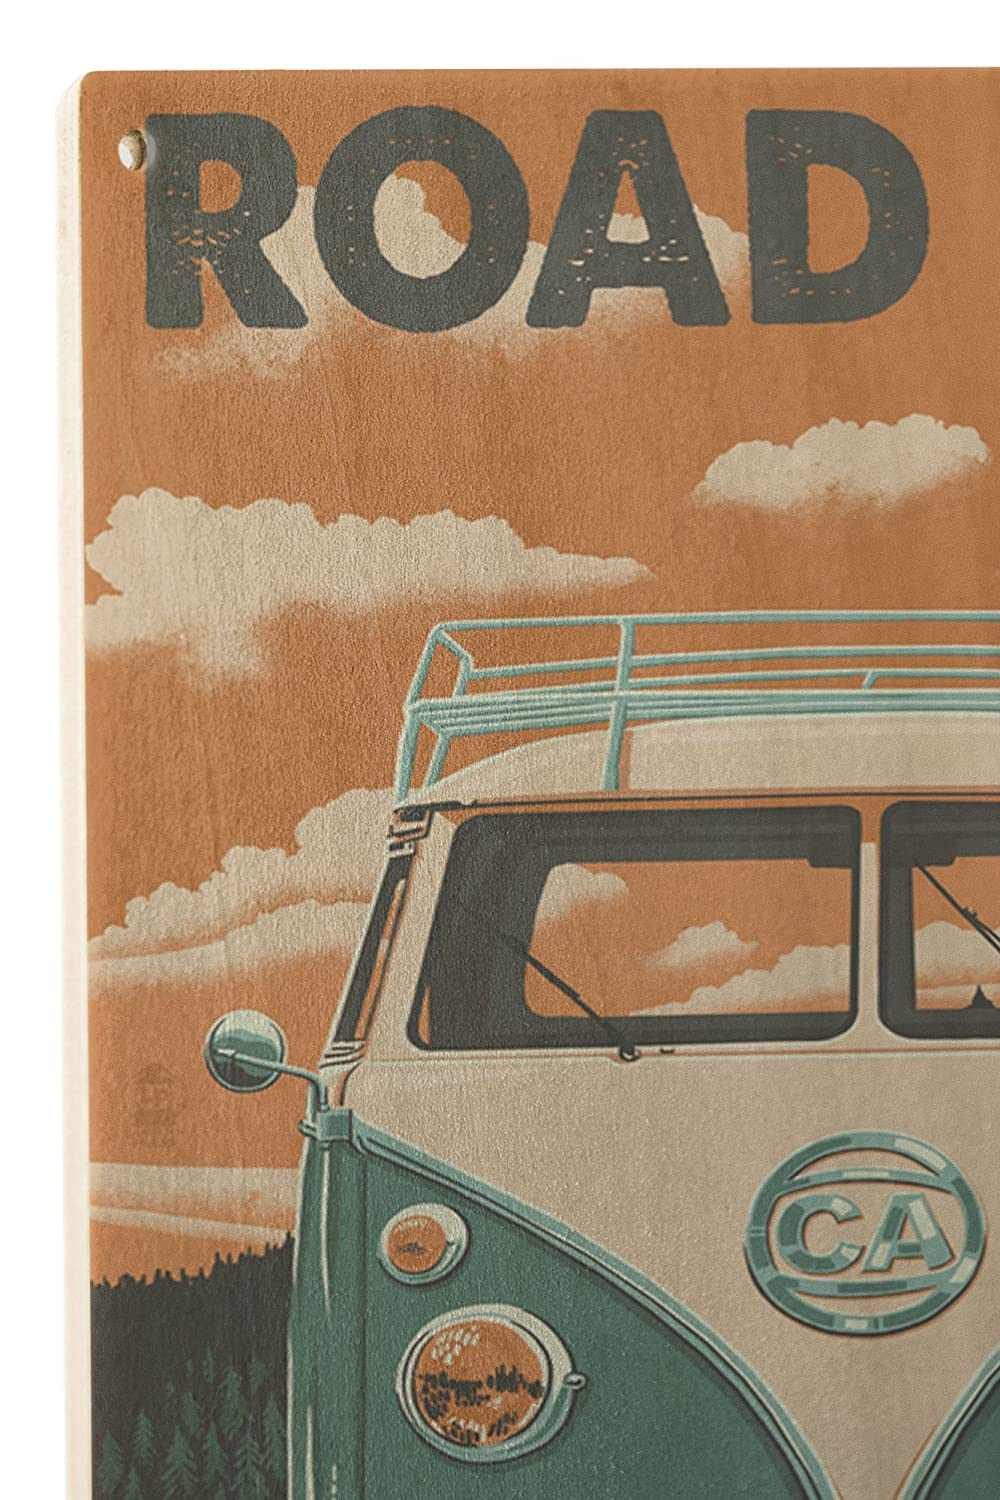 Amazon.com - Sonora, California - Road Trip VW Van (10x15 Wood Wall Sign, Wall Decor Ready to Hang) -